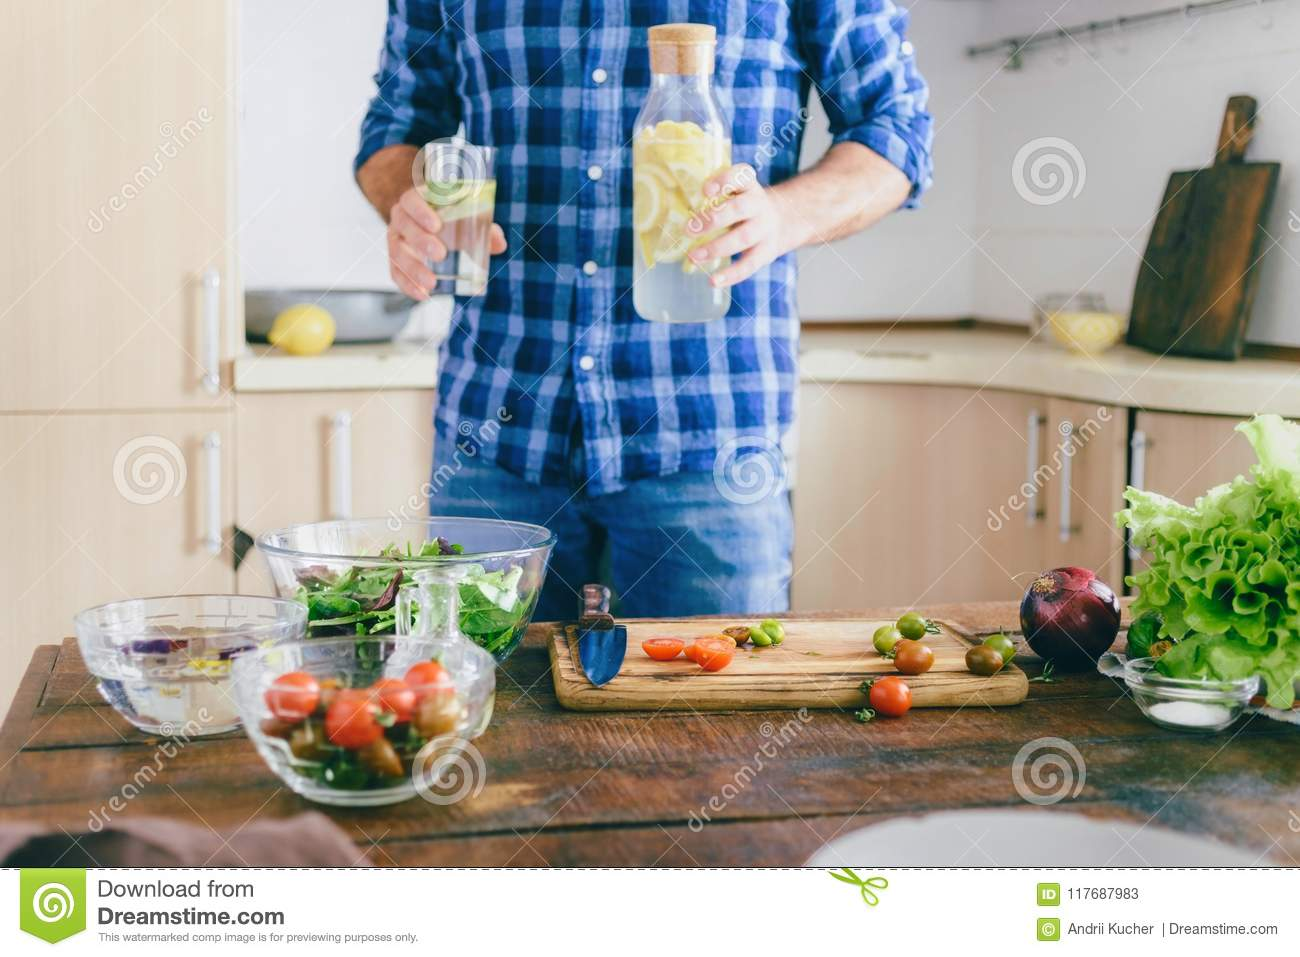 Man Cooking Healthy Simple Food Home Kitchen Sunny Evening Healthy Food Concept Stock Image Image Of Board Ingredients 117687983